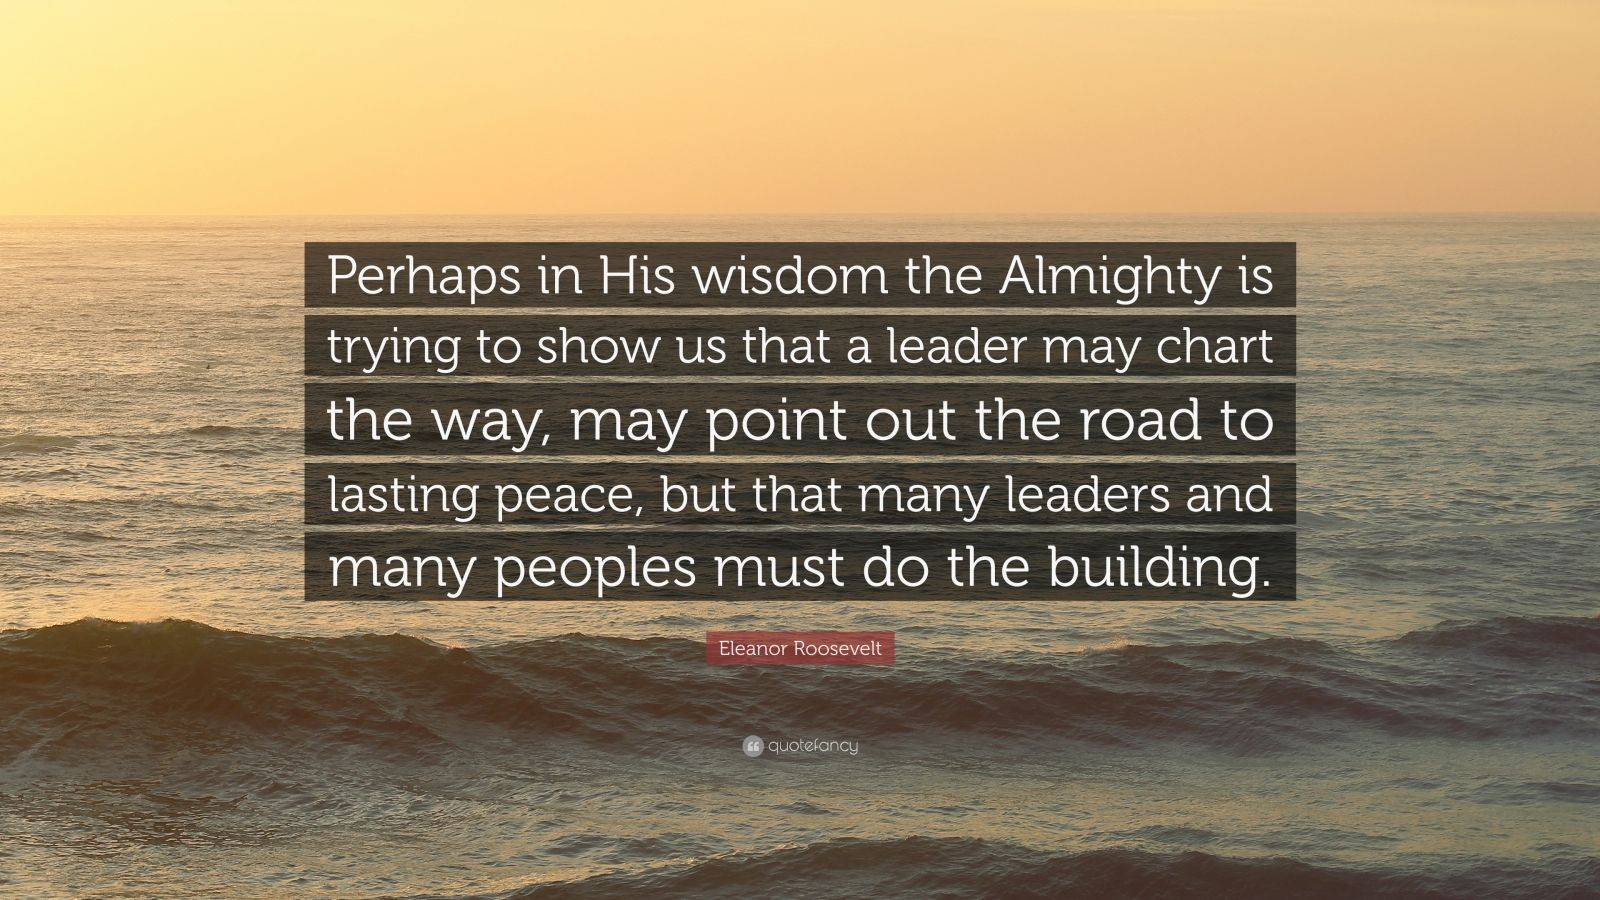 """Eleanor Roosevelt Quote: """"Perhaps in His wisdom the Almighty is trying to show us that a leader may chart the way, may point out the road to lasting peace, but that many leaders and many peoples must do the building."""""""